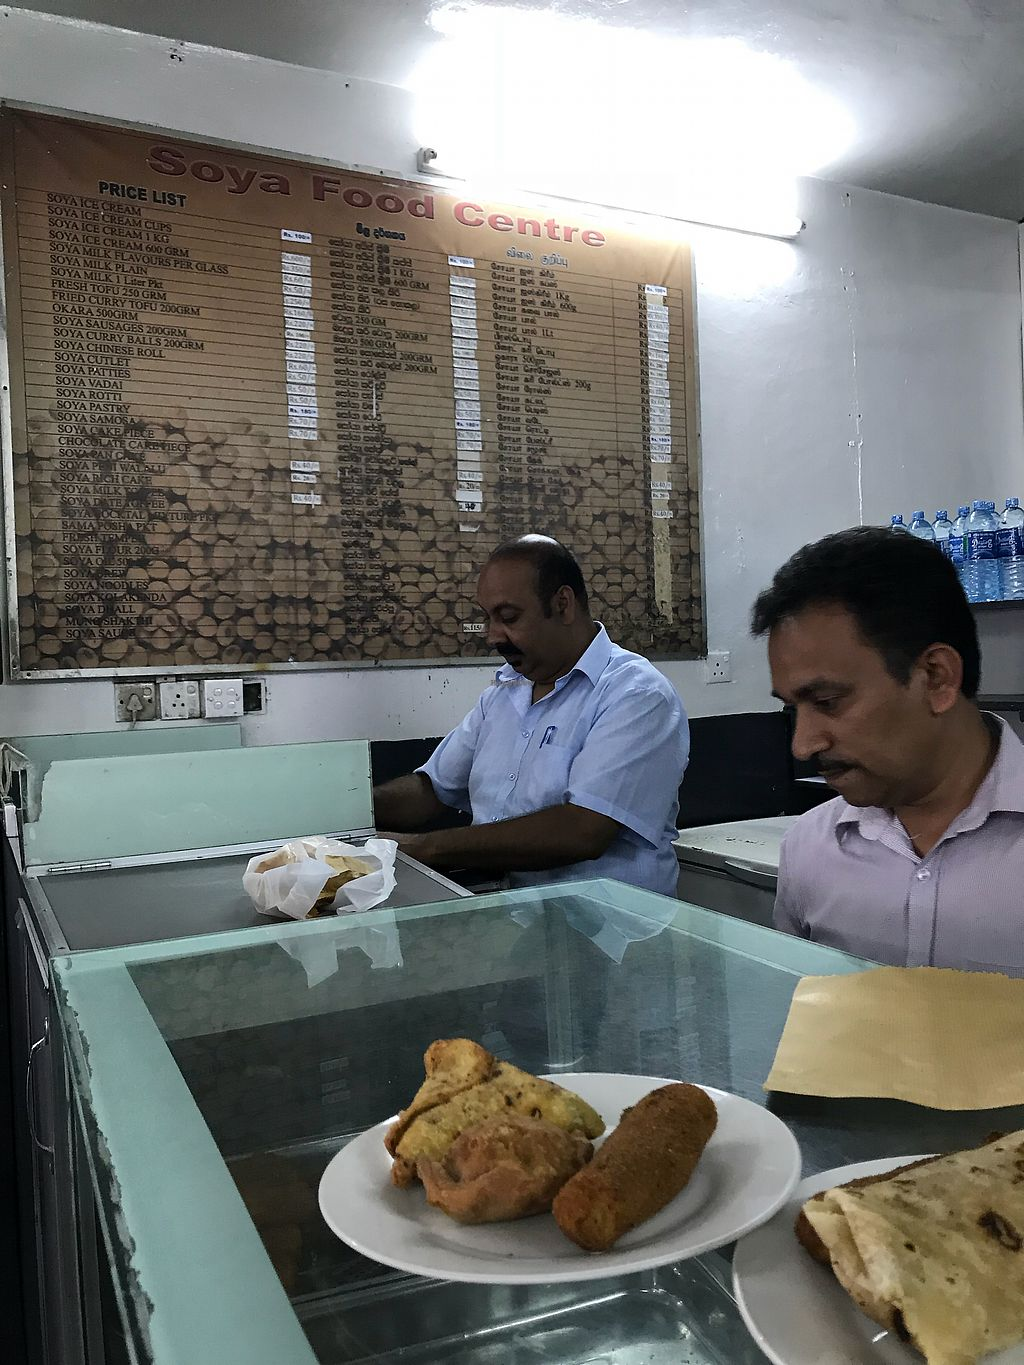 "Photo of Soya Food Centre  by <a href=""/members/profile/JessiJune"">JessiJune</a> <br/>Extensive soya menu <br/> April 20, 2018  - <a href='/contact/abuse/image/53624/388361'>Report</a>"